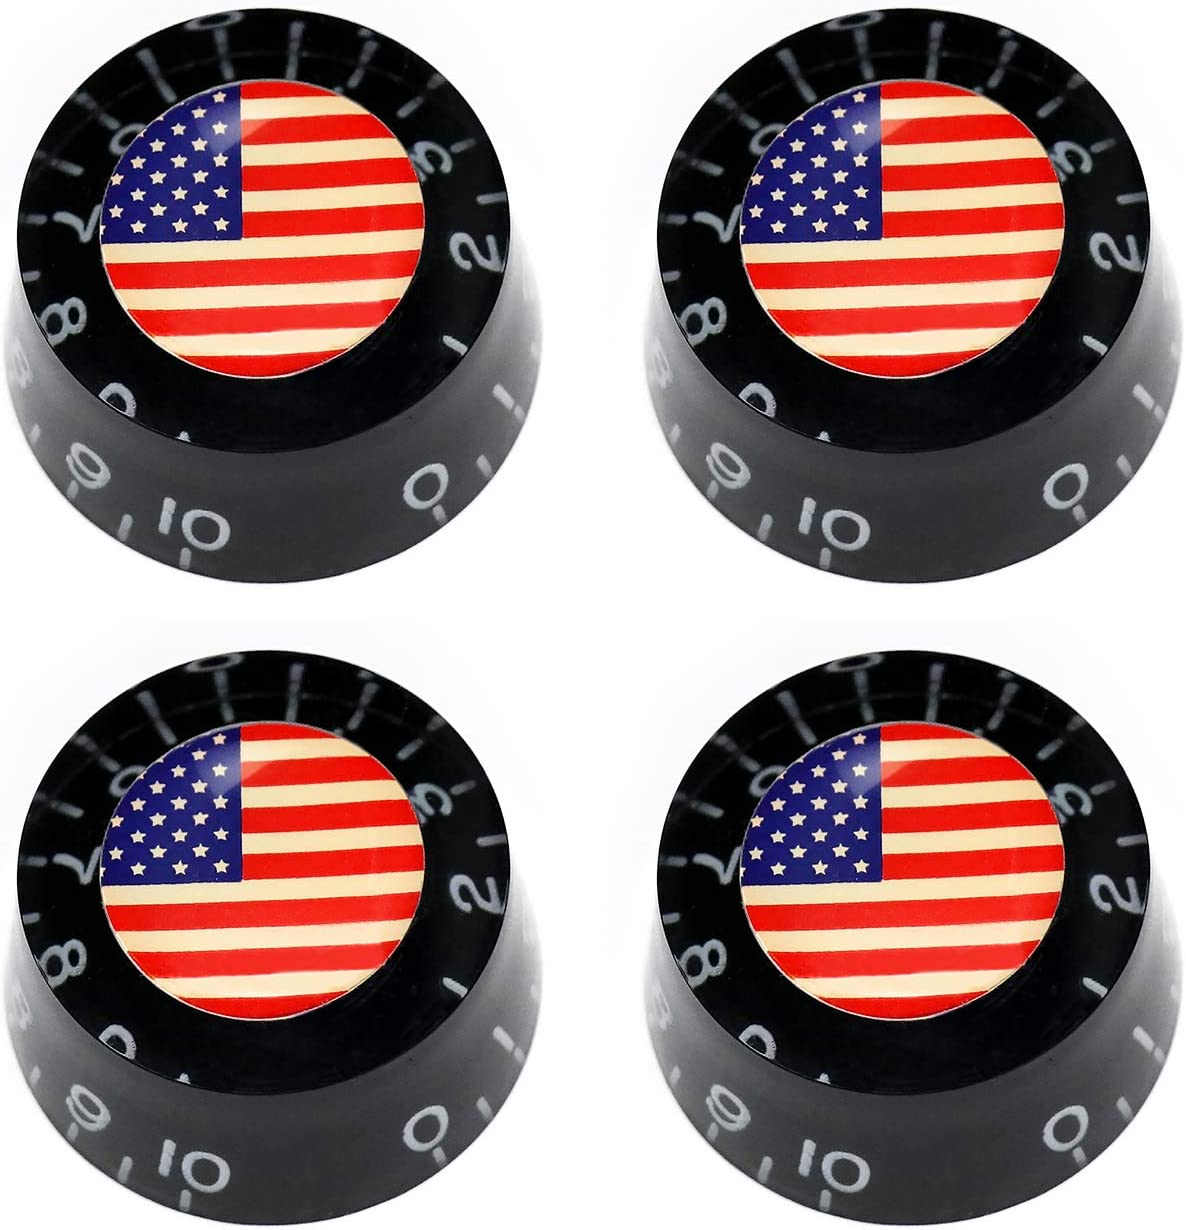 Metallor Electric Guitar Top Hat Knobs Speed Volume Tone Control Knobs Compatible with Les Paul LP Style Electric Guitar Parts Replacement Set of 4Pcs.